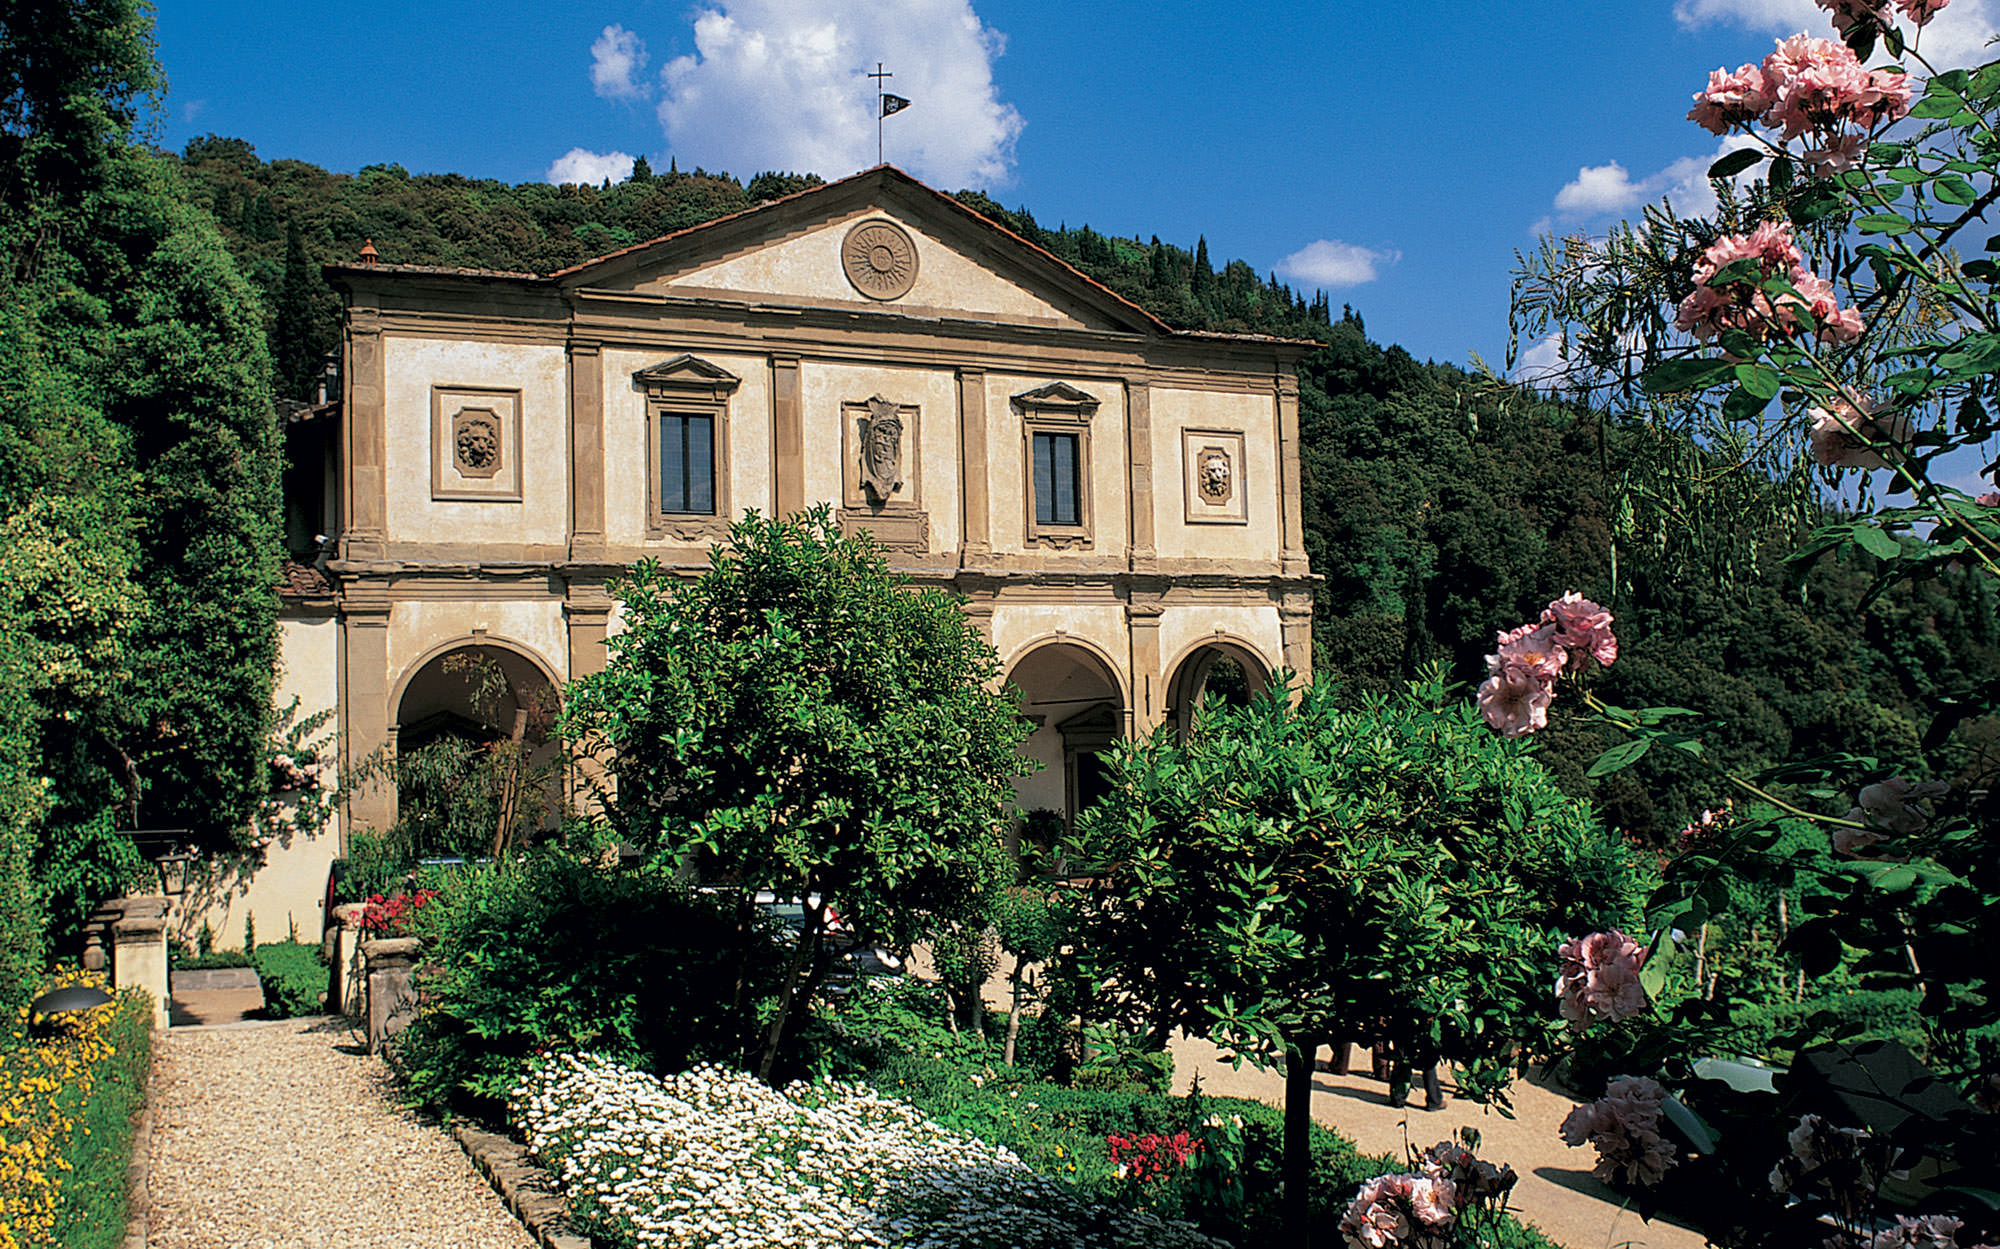 Villa San Michele Wedding Florence Italy Wedding Locations